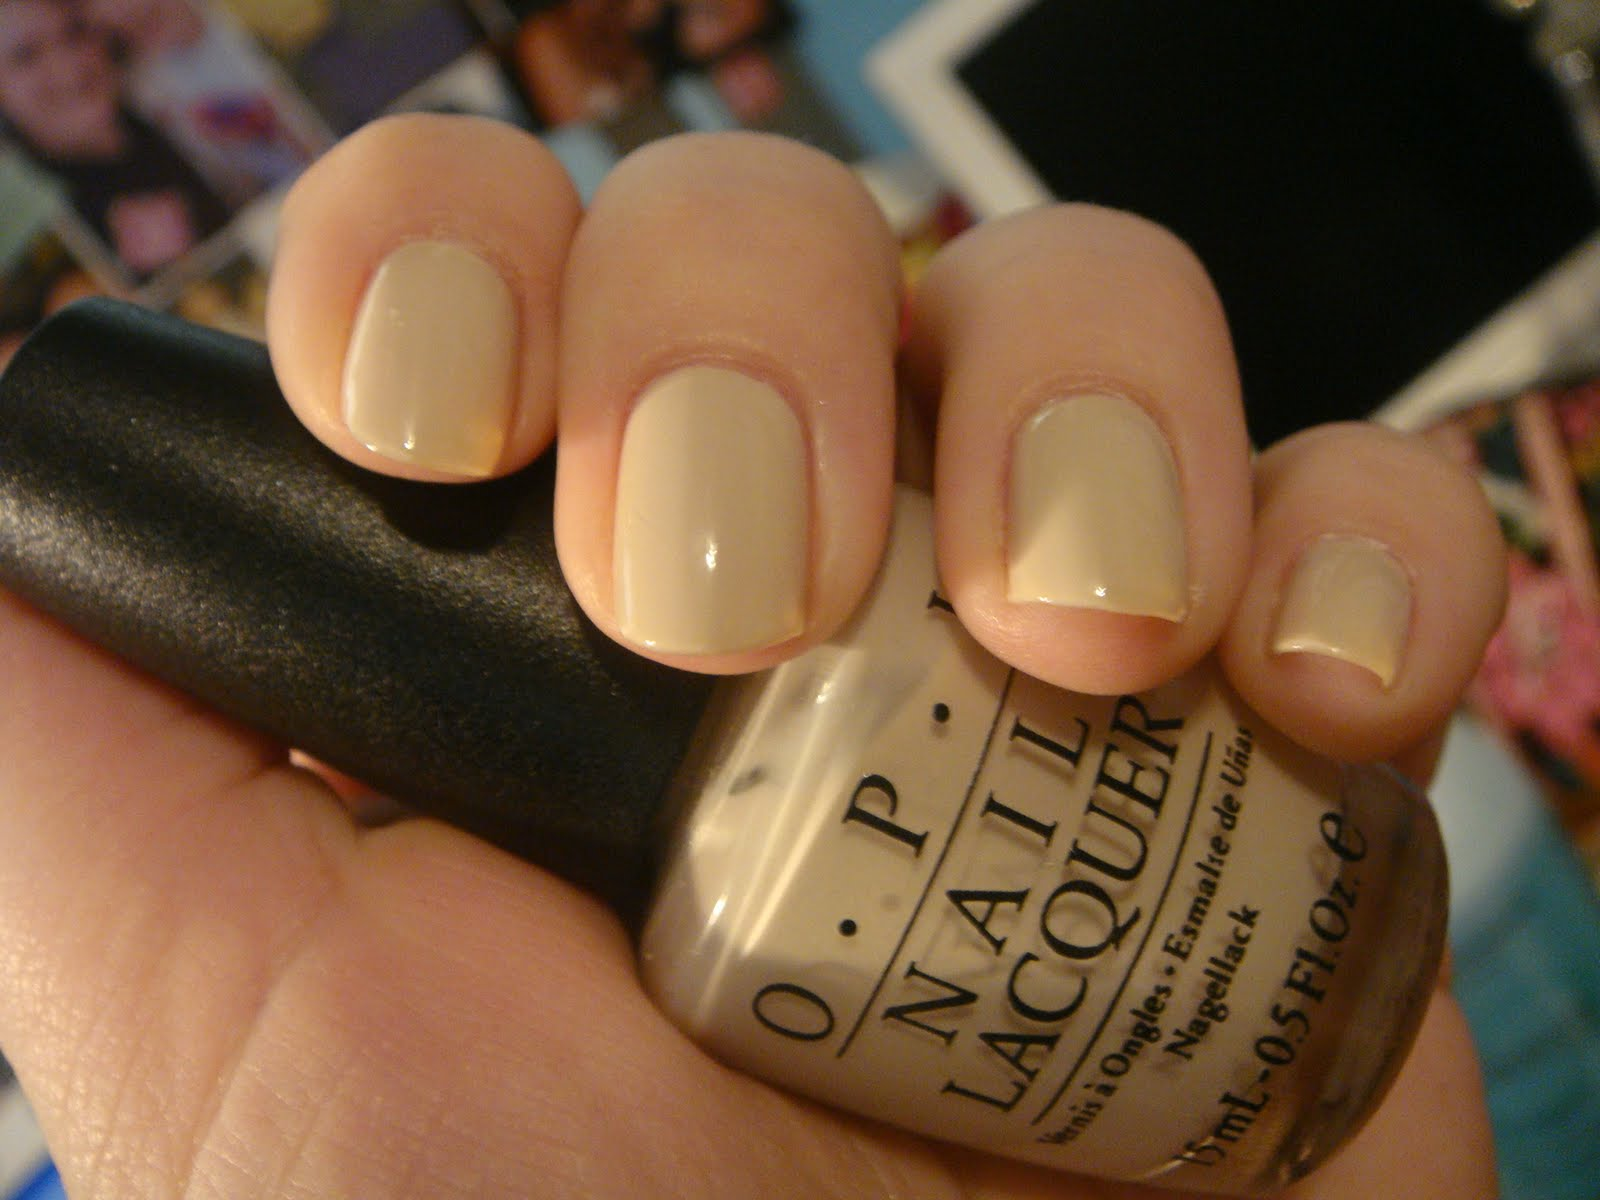 Eat.Sleep.Polish.: Discontinued OPI Color?